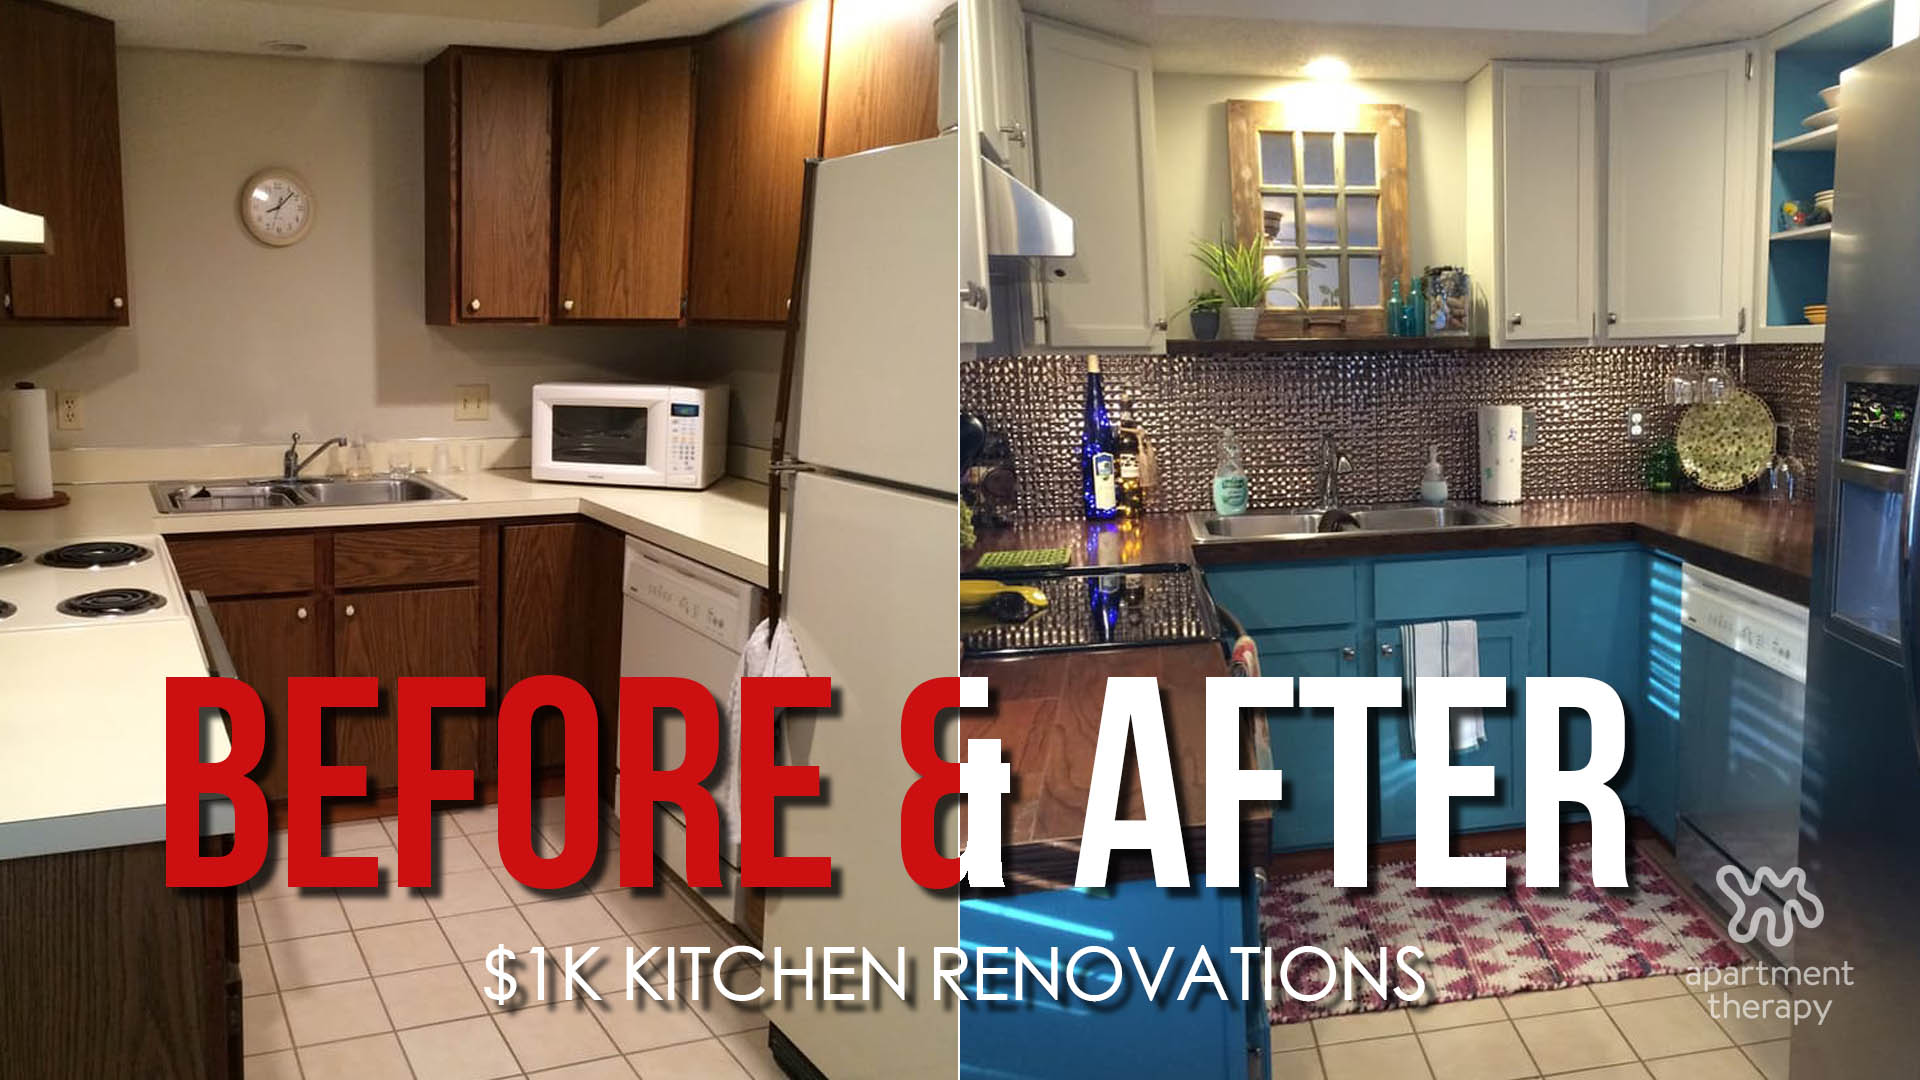 Kitchen Renovations on a Budget - Video